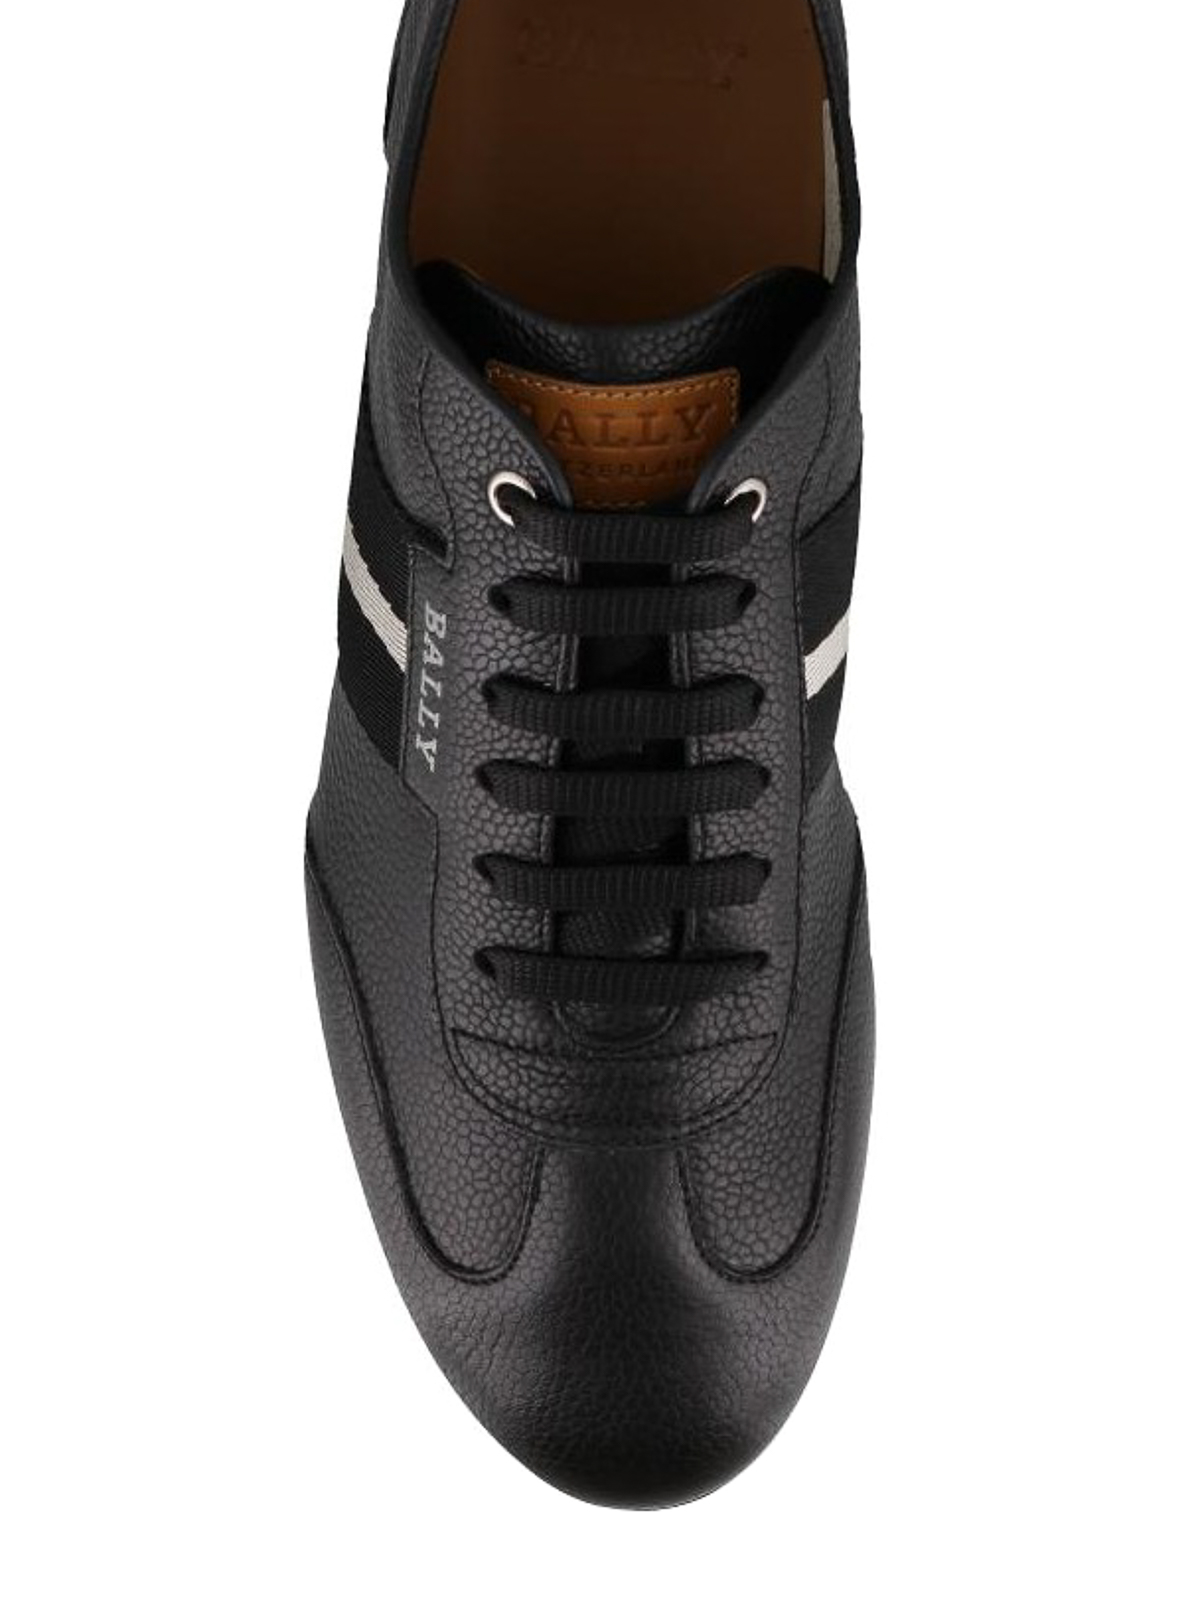 4668ccdf61 Bally - Harlam calf leather black sneakers - trainers - 6223128